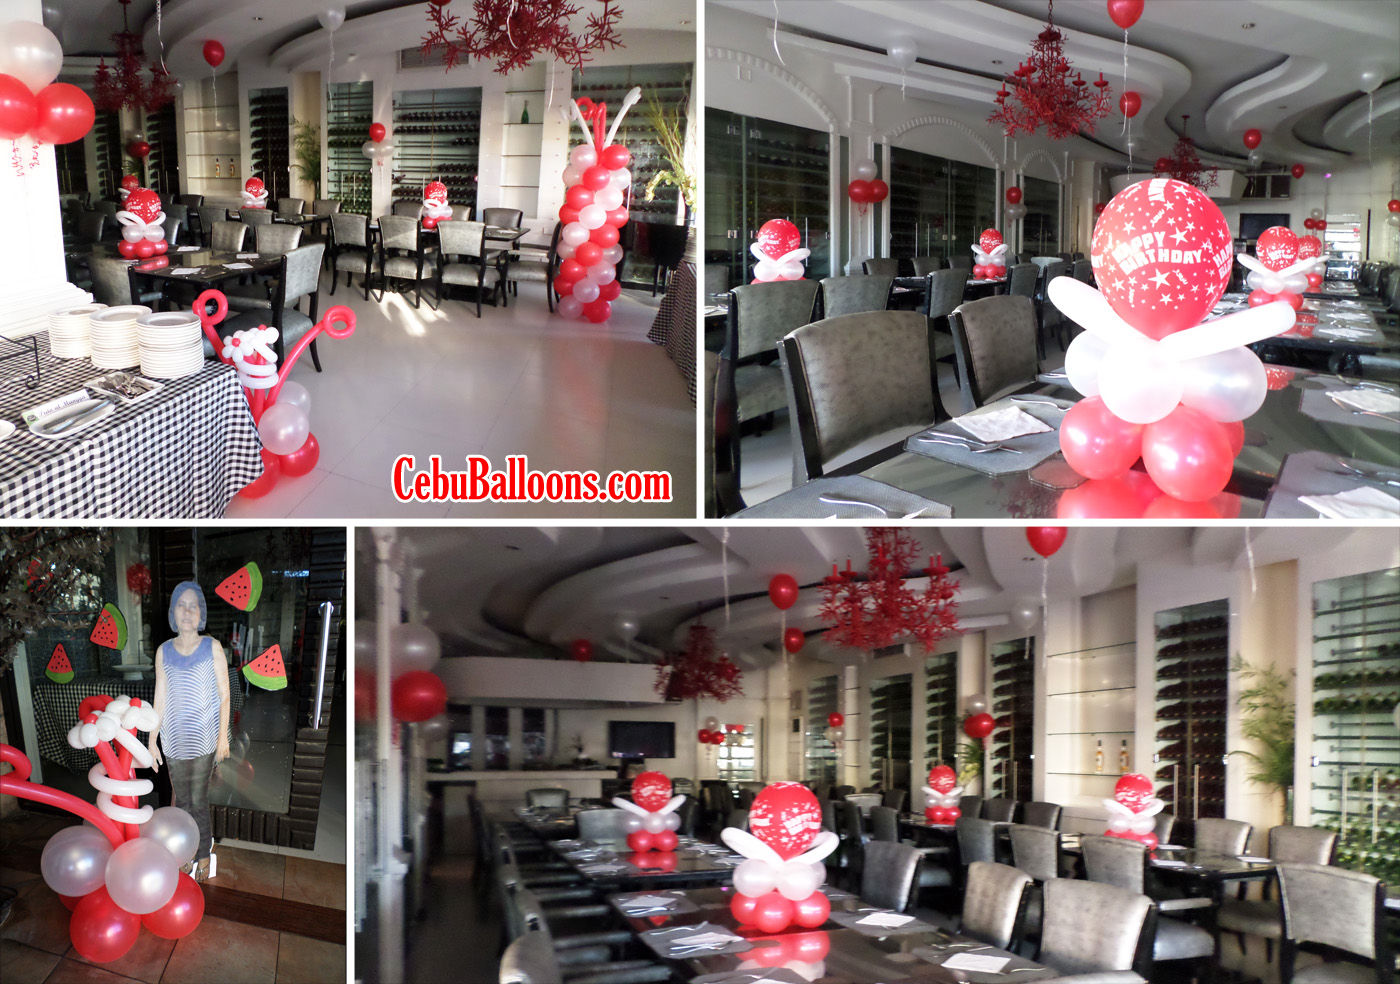 S cebu balloons and party supplies